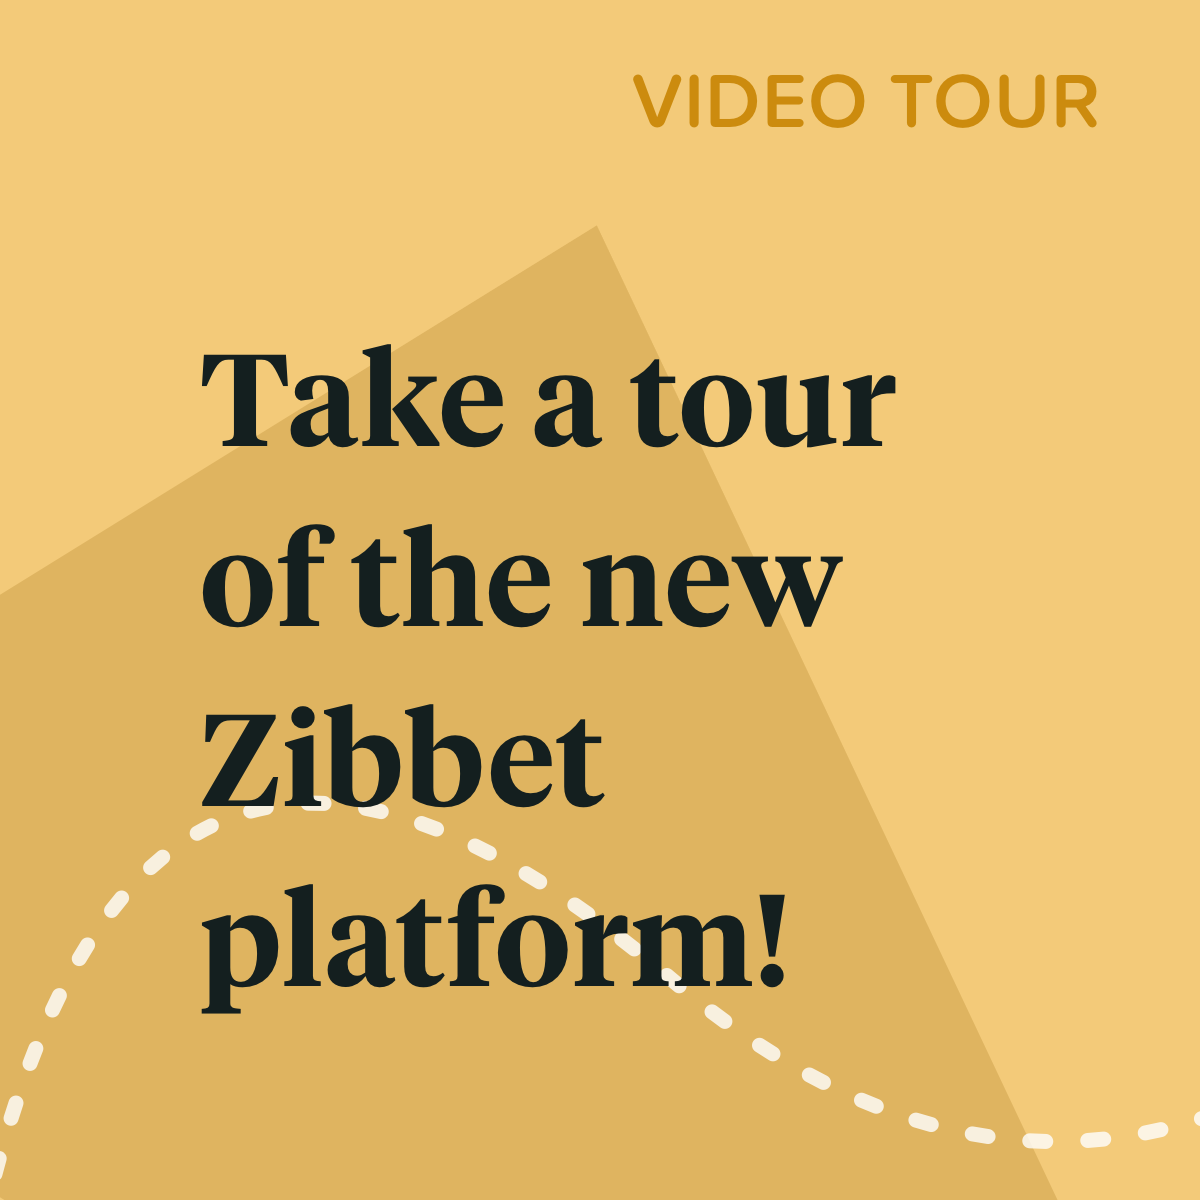 Want to get a realtime look inside the new Zibbet platform